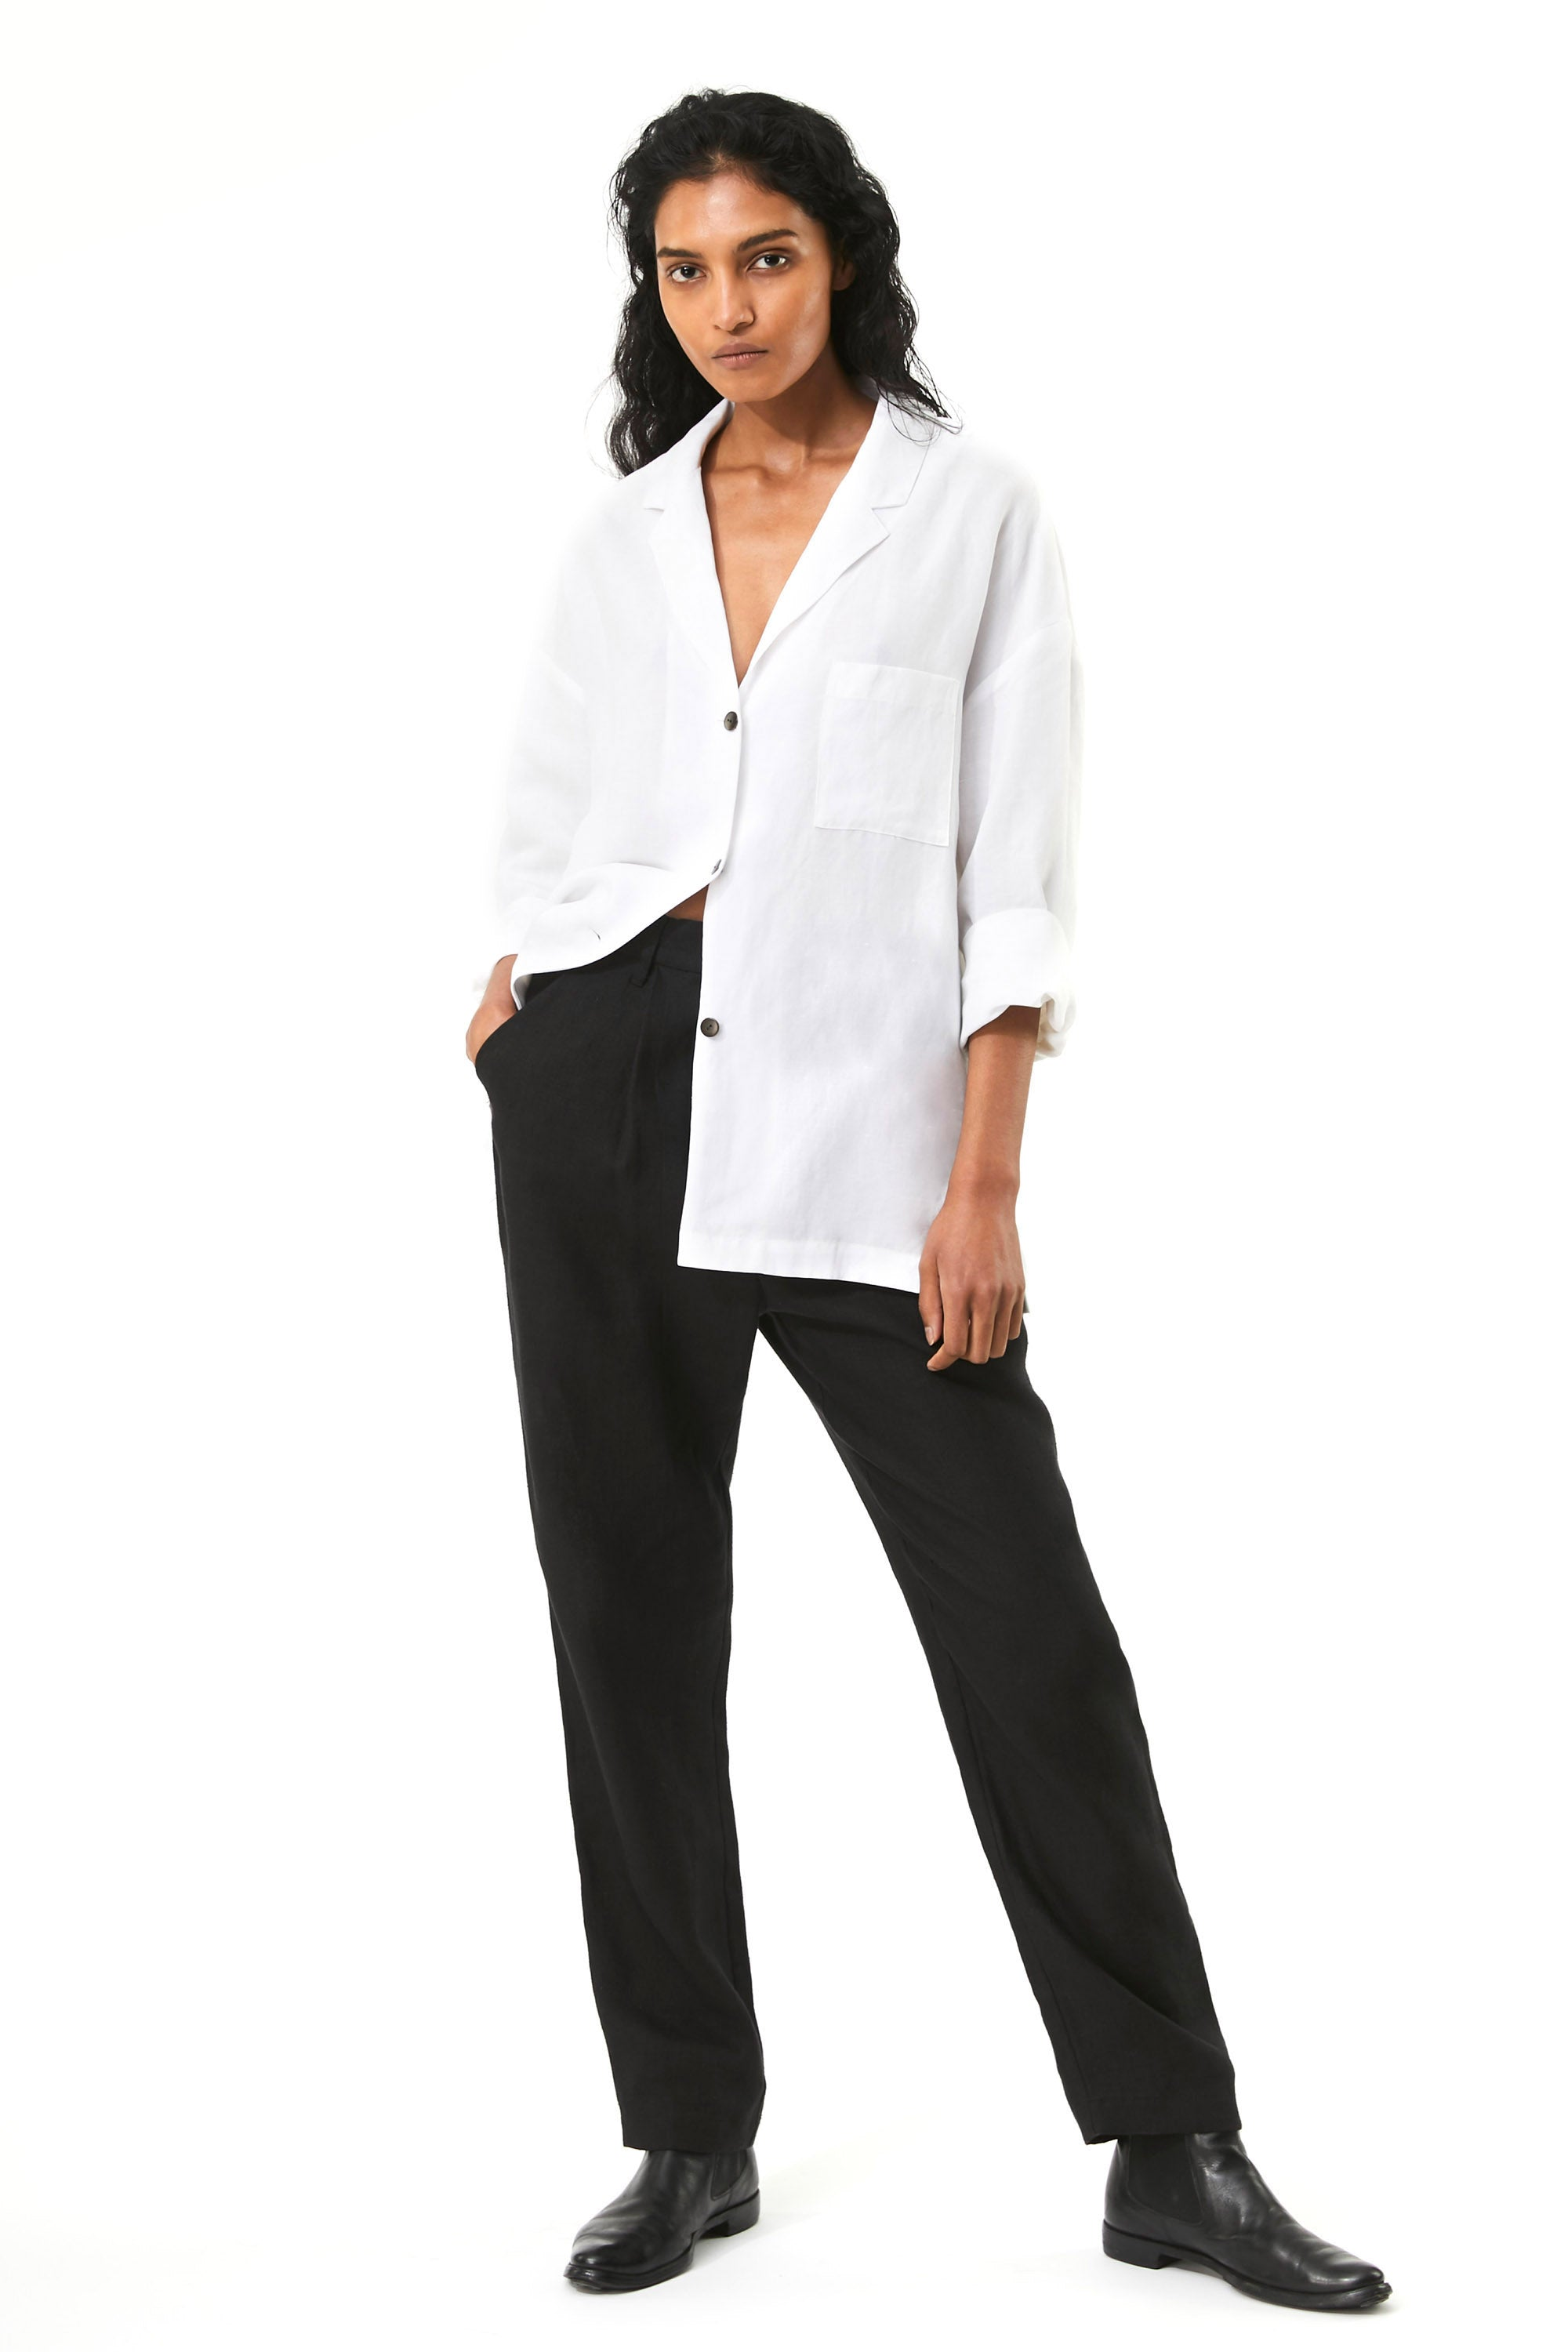 Mara Hoffman White Eleanor Top in Tencel Lyocell and Linen (full body)